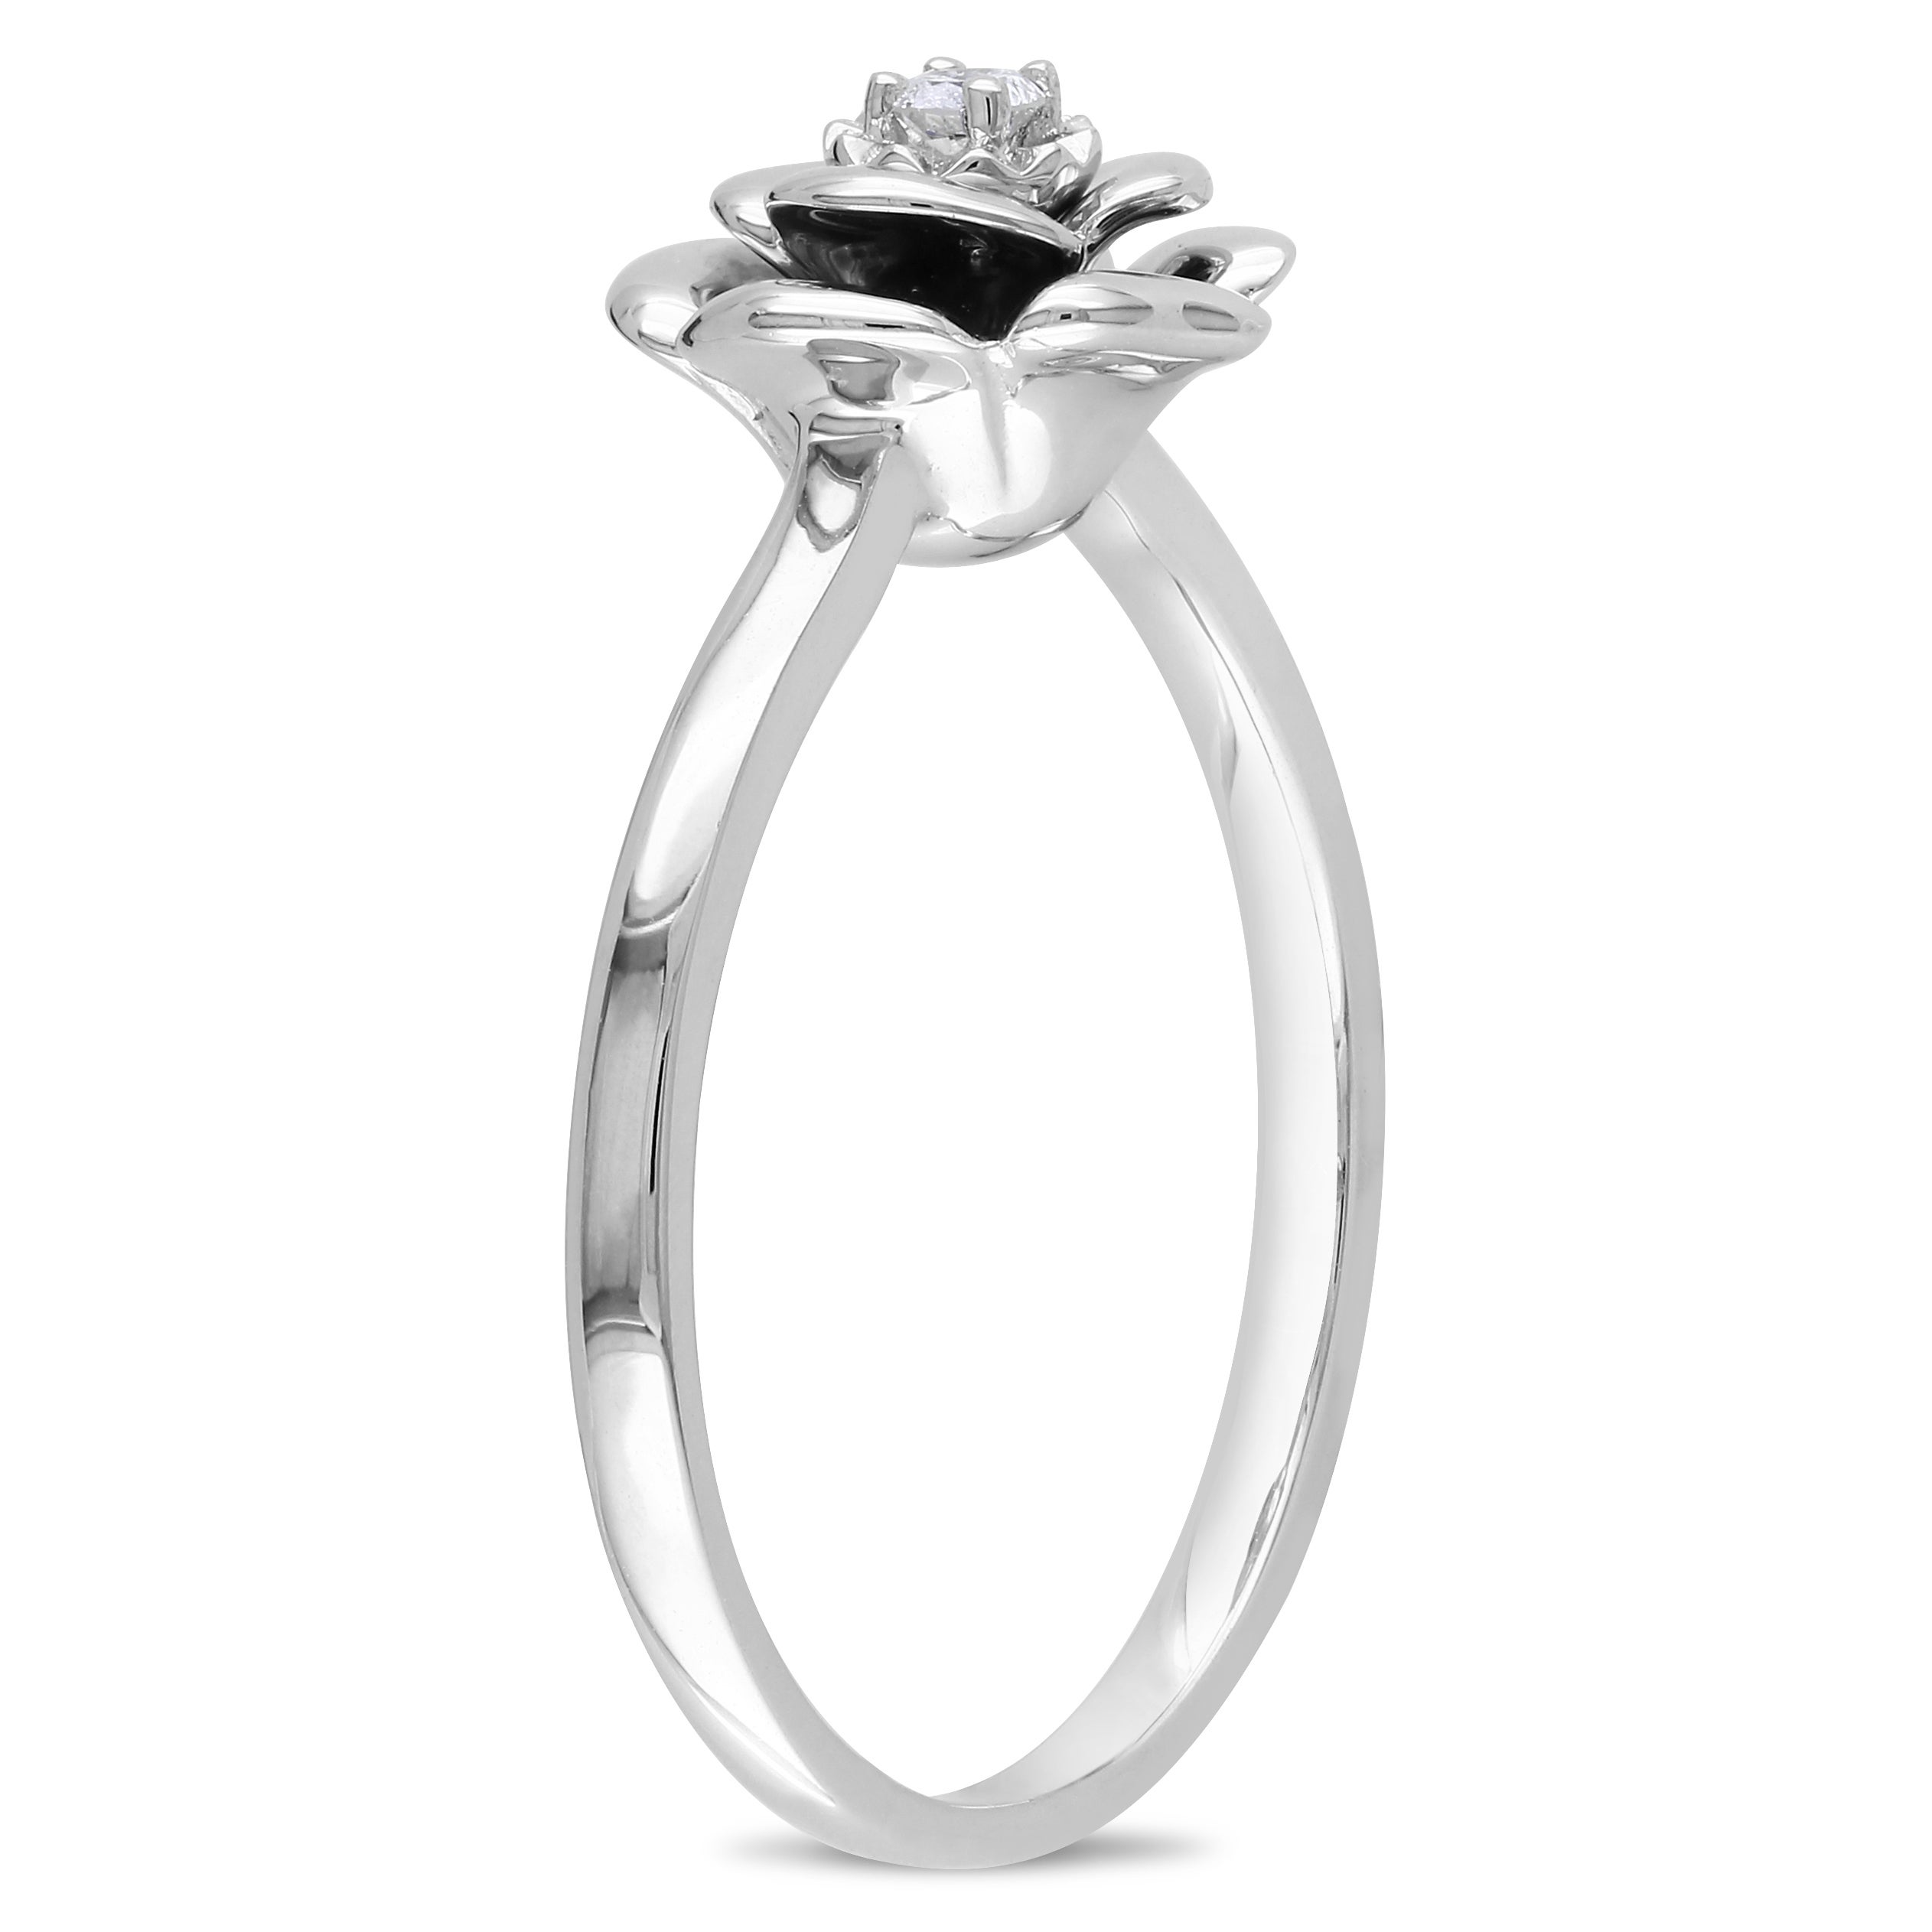 collection rings style crafting our your point can quality to only buy the through diamond you dedicated assurance not process we ensuring love sylvie engagement ourprocess ll flower are best